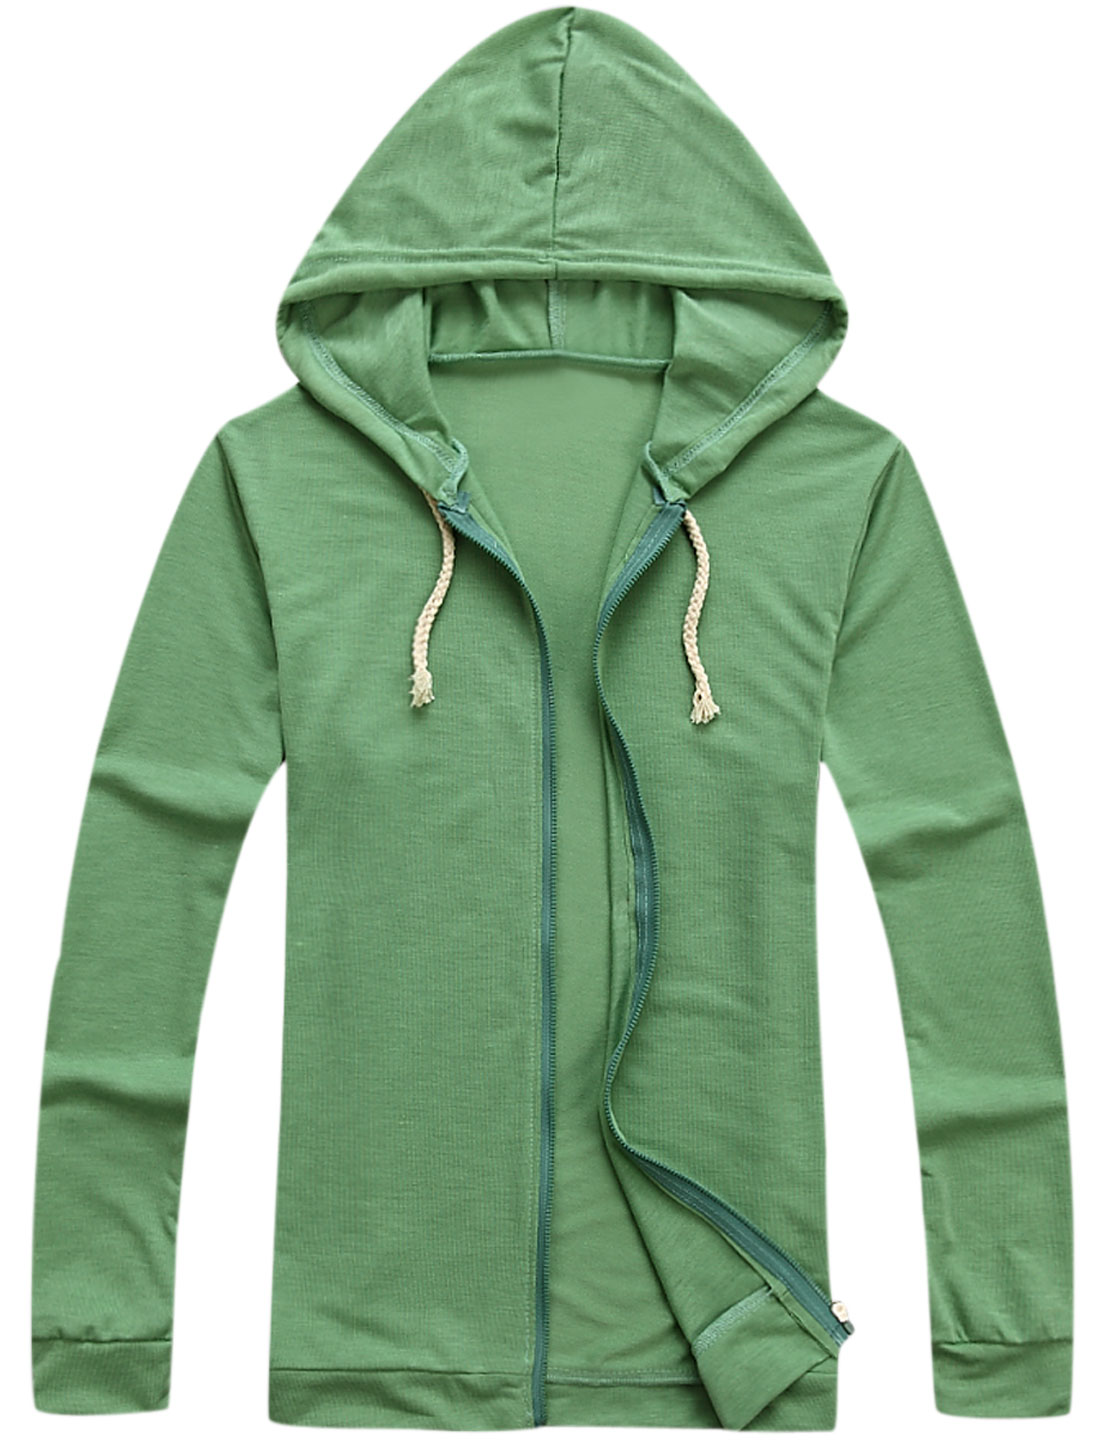 Long-Sleeved Drawstring Design Soft Fashion Thin Hoodie for Men Green M